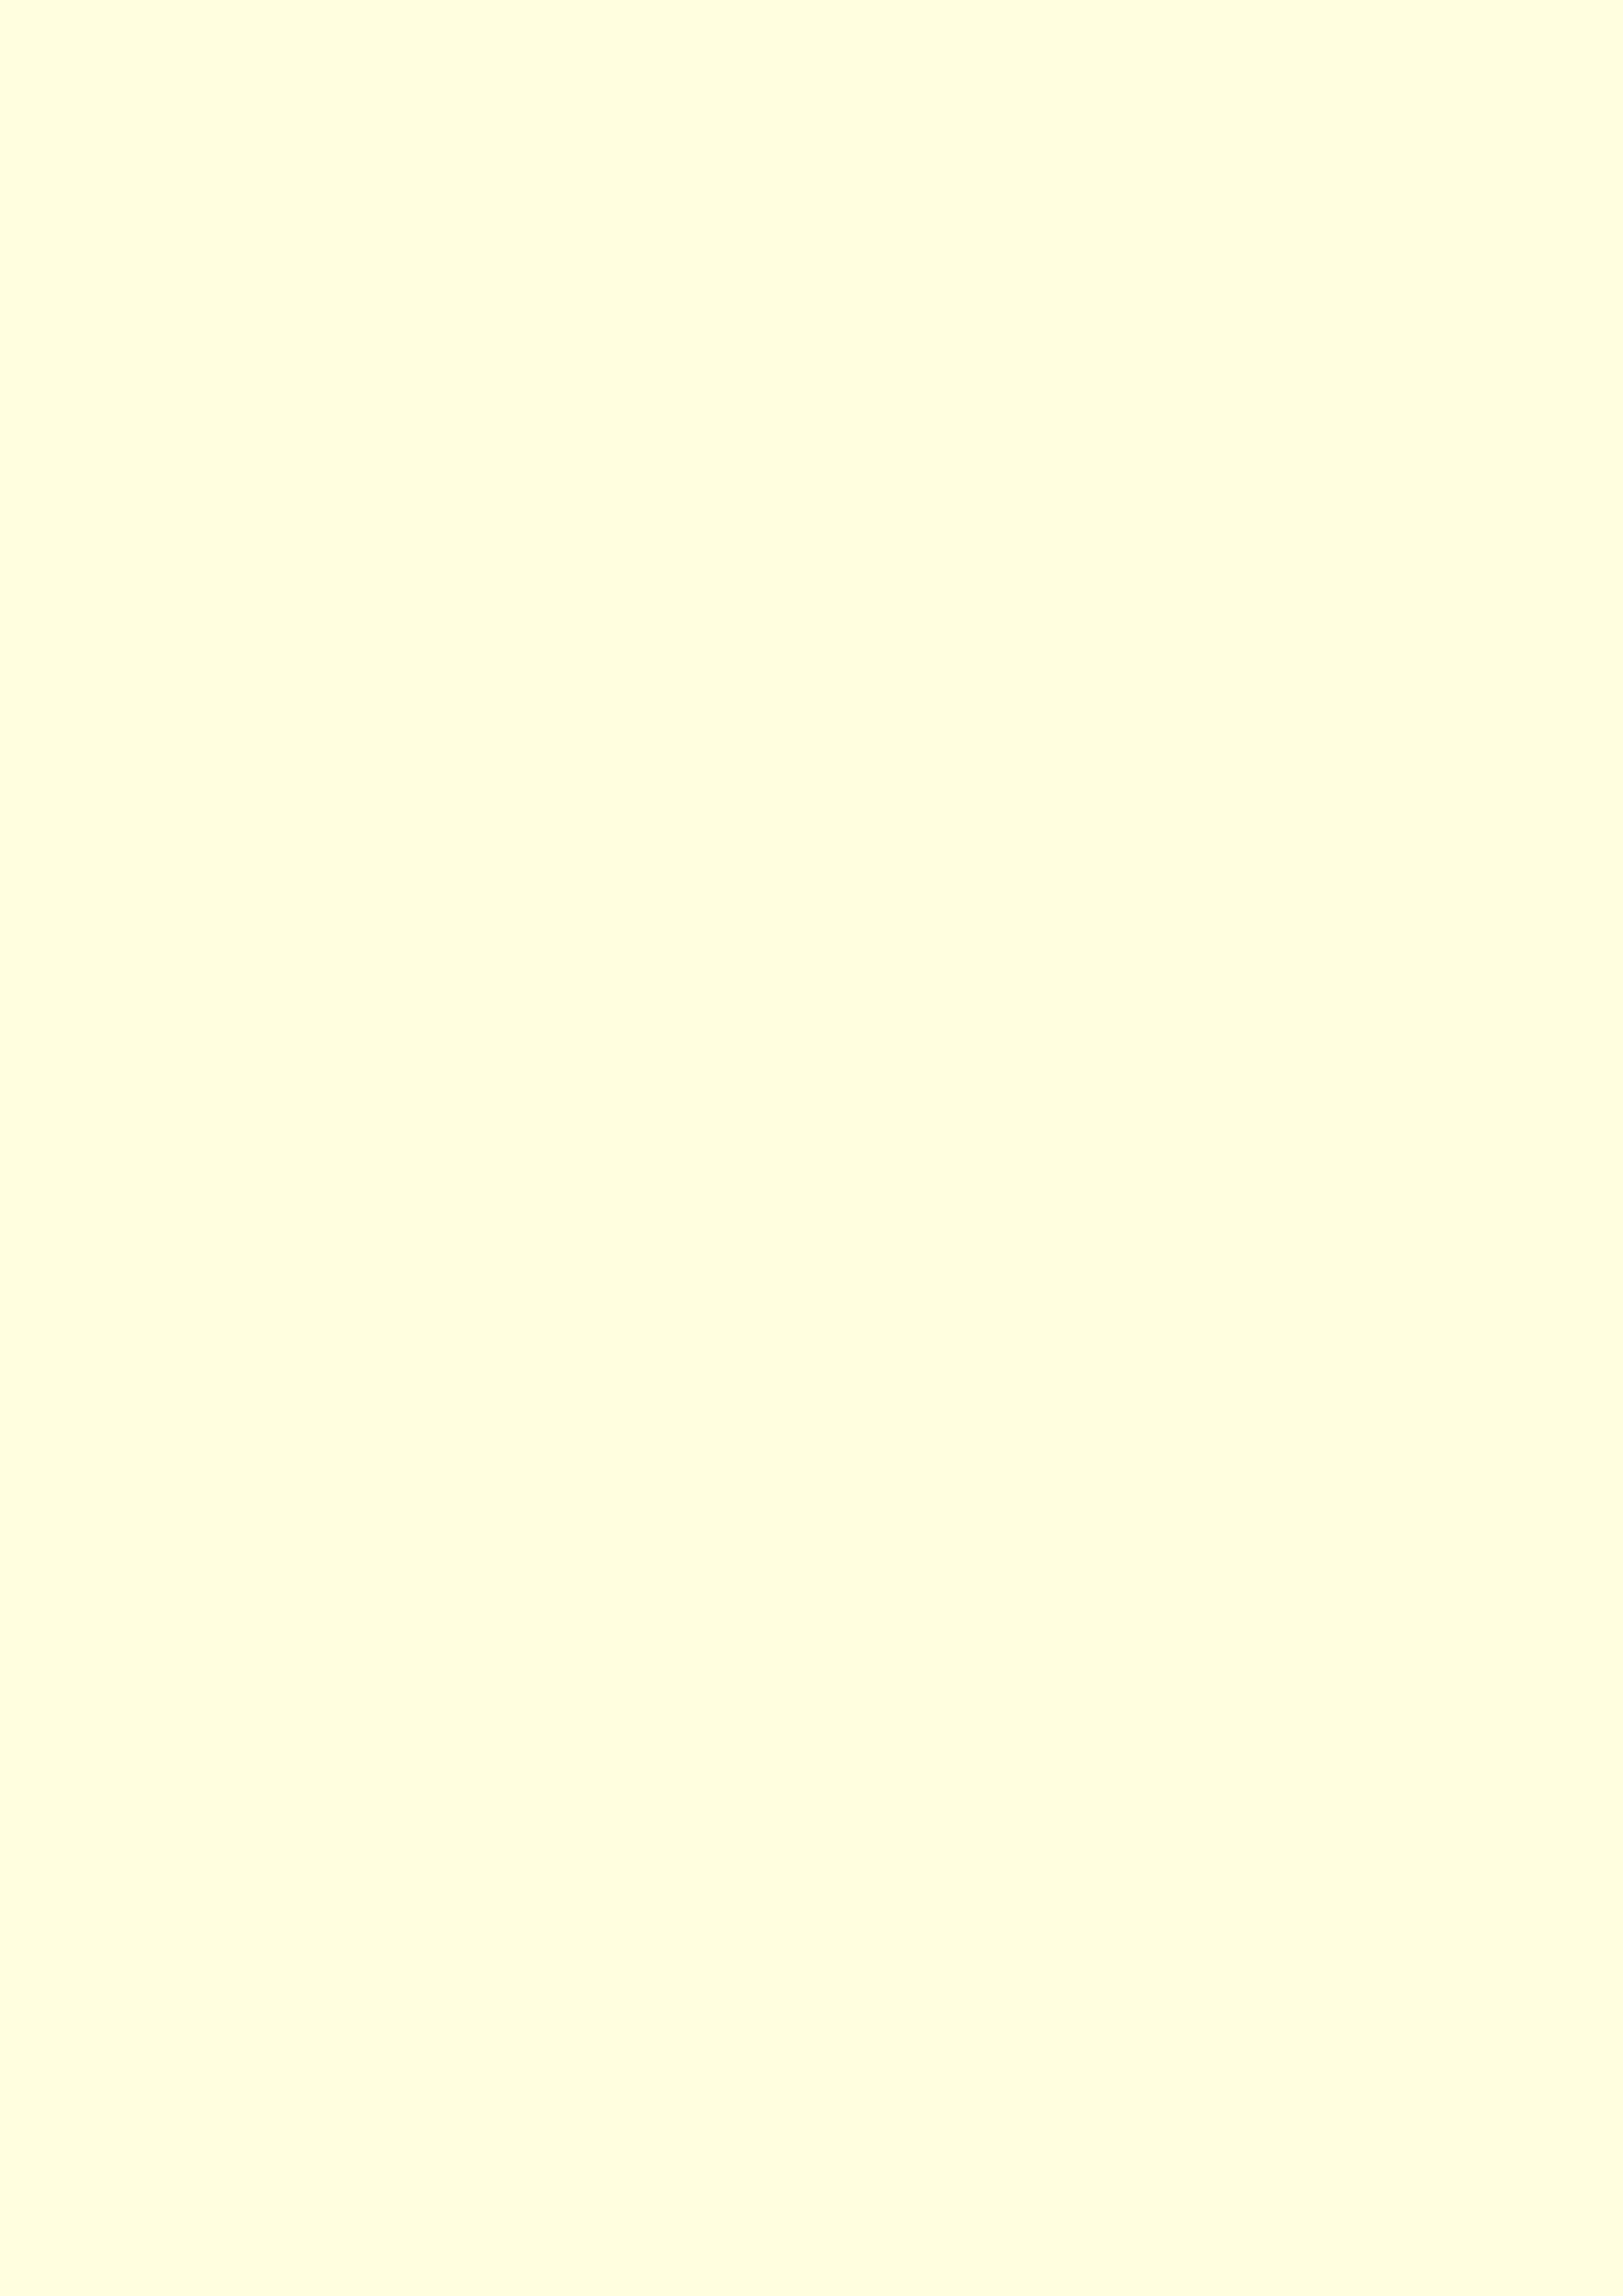 2480x3508 Light Yellow Solid Color Background